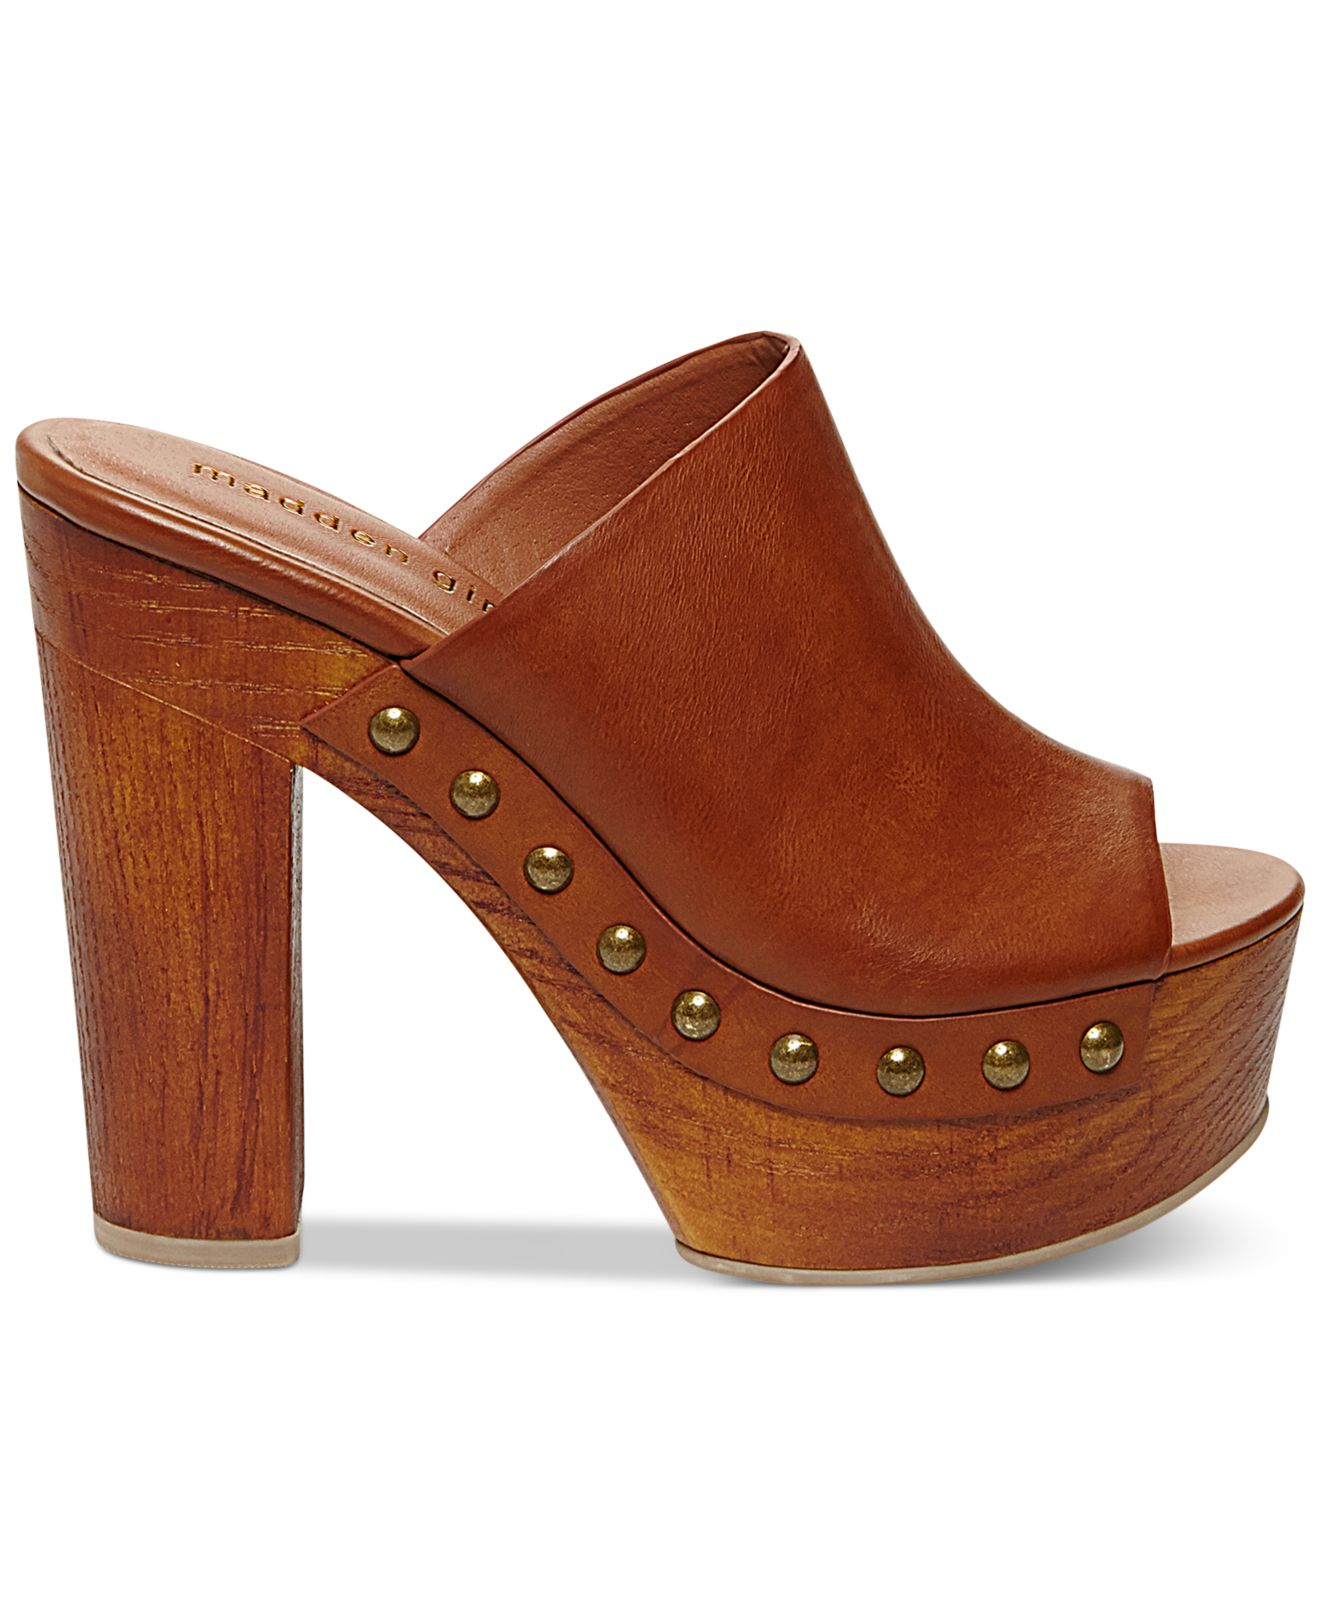 a93f8ab60ac7 Lyst - Madden Girl Merry Wooden Platform Mules in Brown